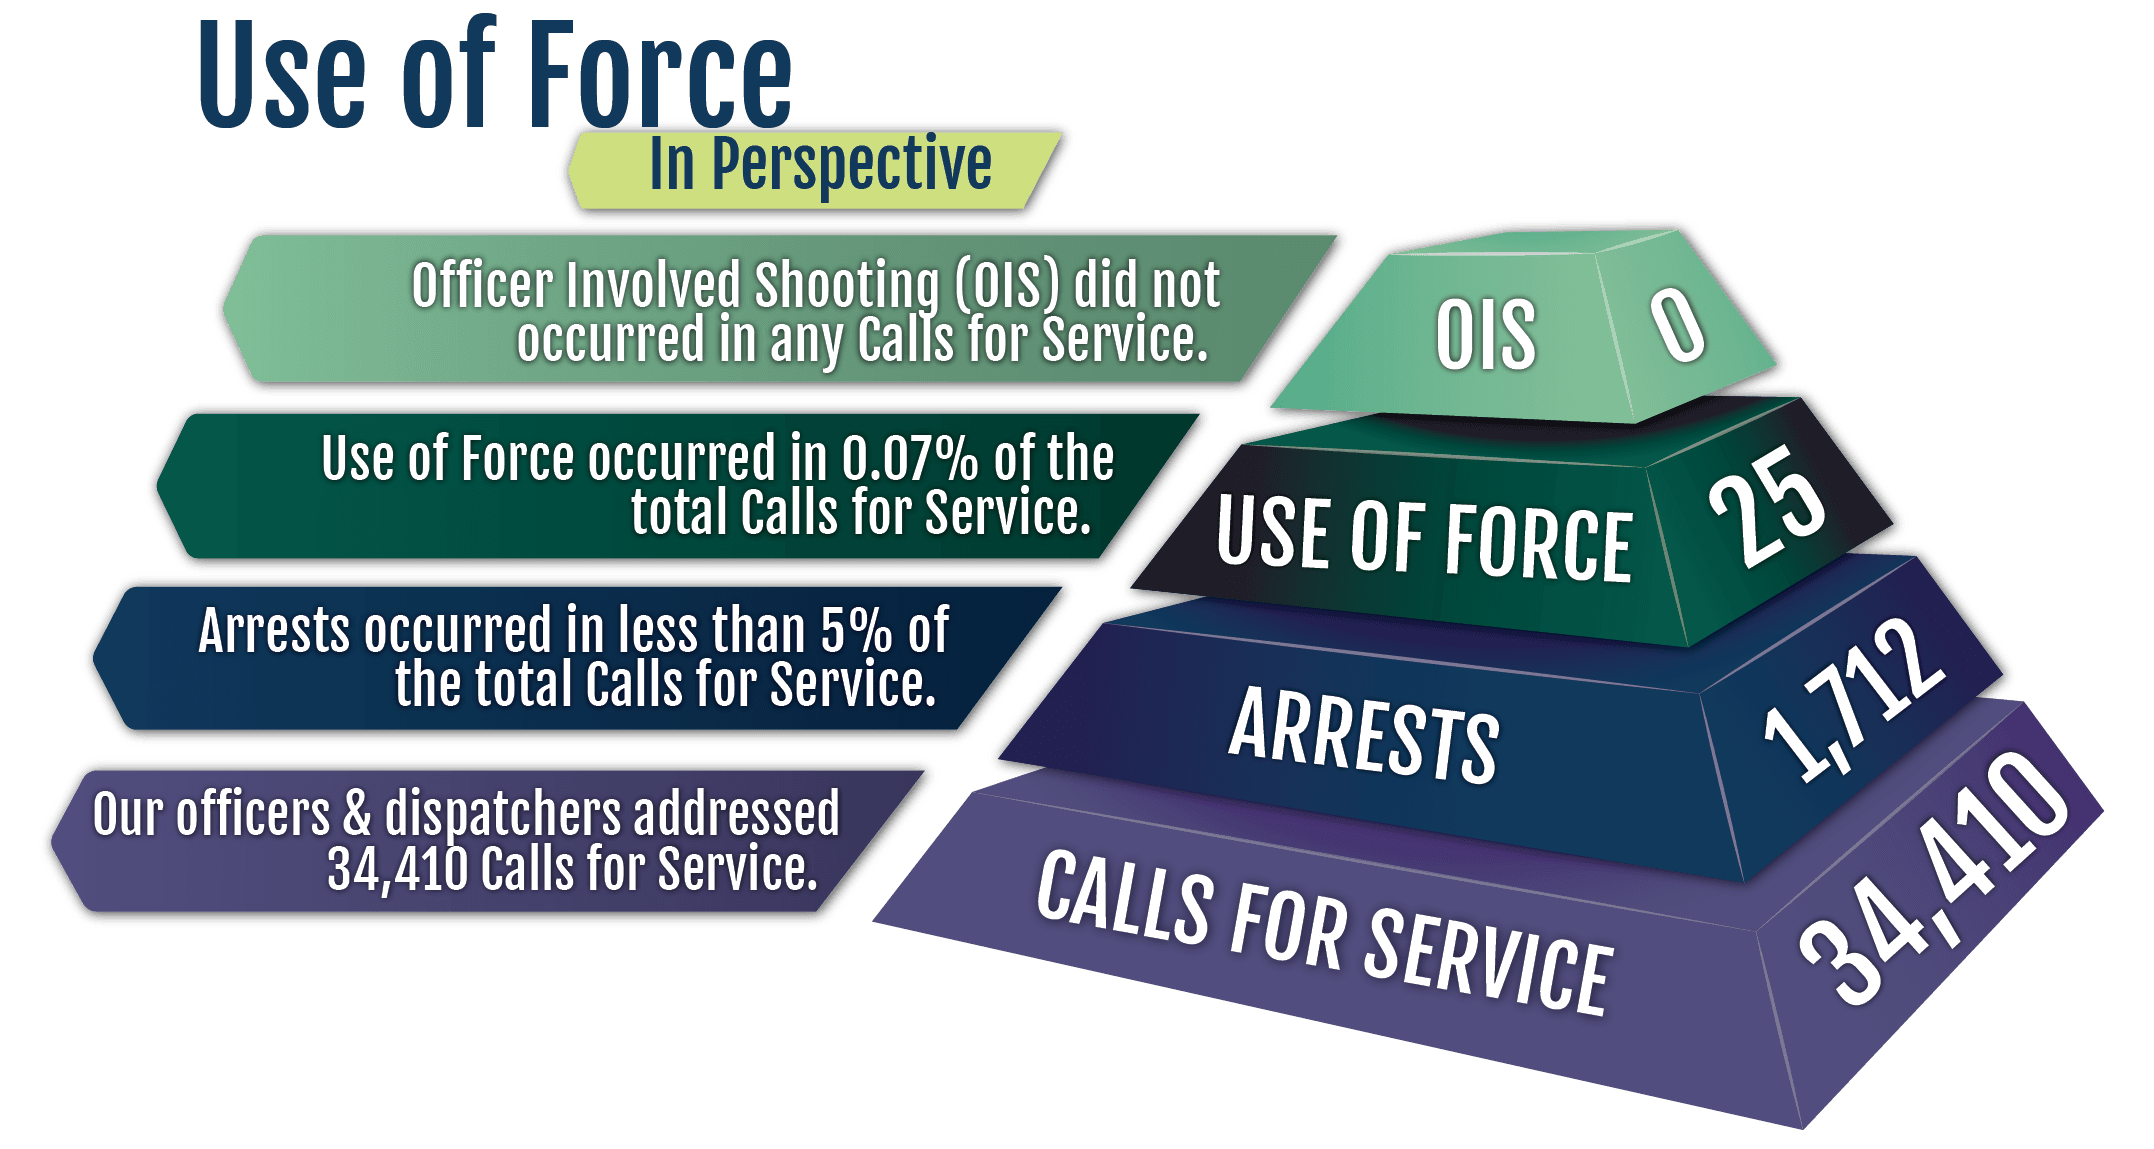 Use of Force Stats